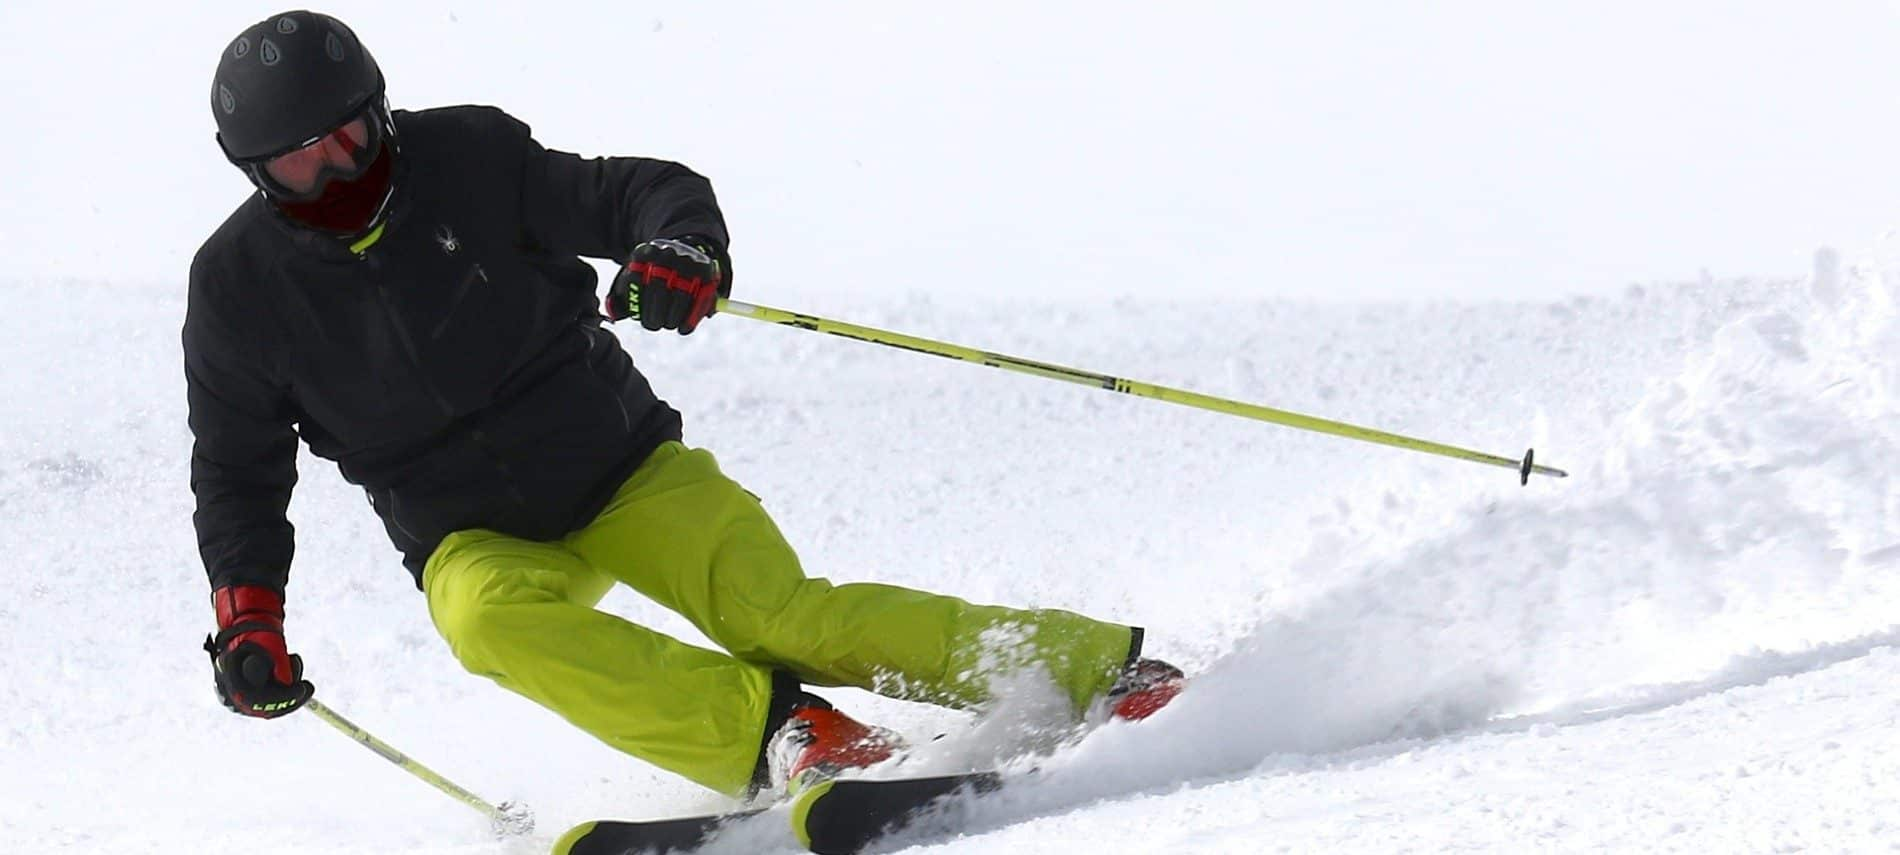 Man in black jacket and green snowpants on skis using poles to make a turn on a snow-covered hill